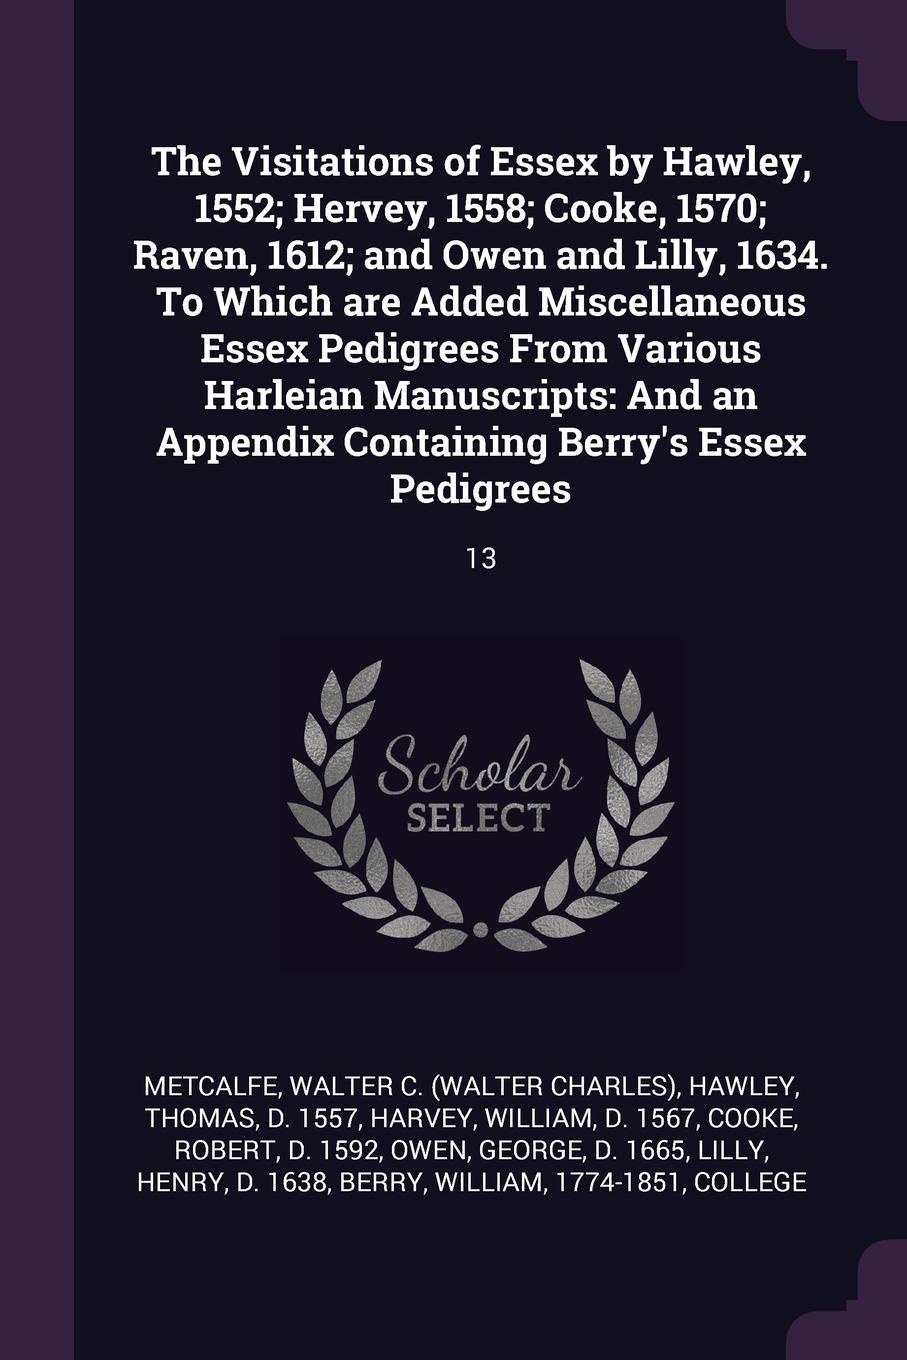 The Visitations of Essex by Hawley, 1552; Hervey, 1558; Cooke, 1570; Raven, 1612; and Owen and Lilly, 1634. To Which are Added Miscellaneous Essex Pedigrees From Various Harleian Manuscripts. And an Appendix Containing Berry.s Essex Pedigrees: 13